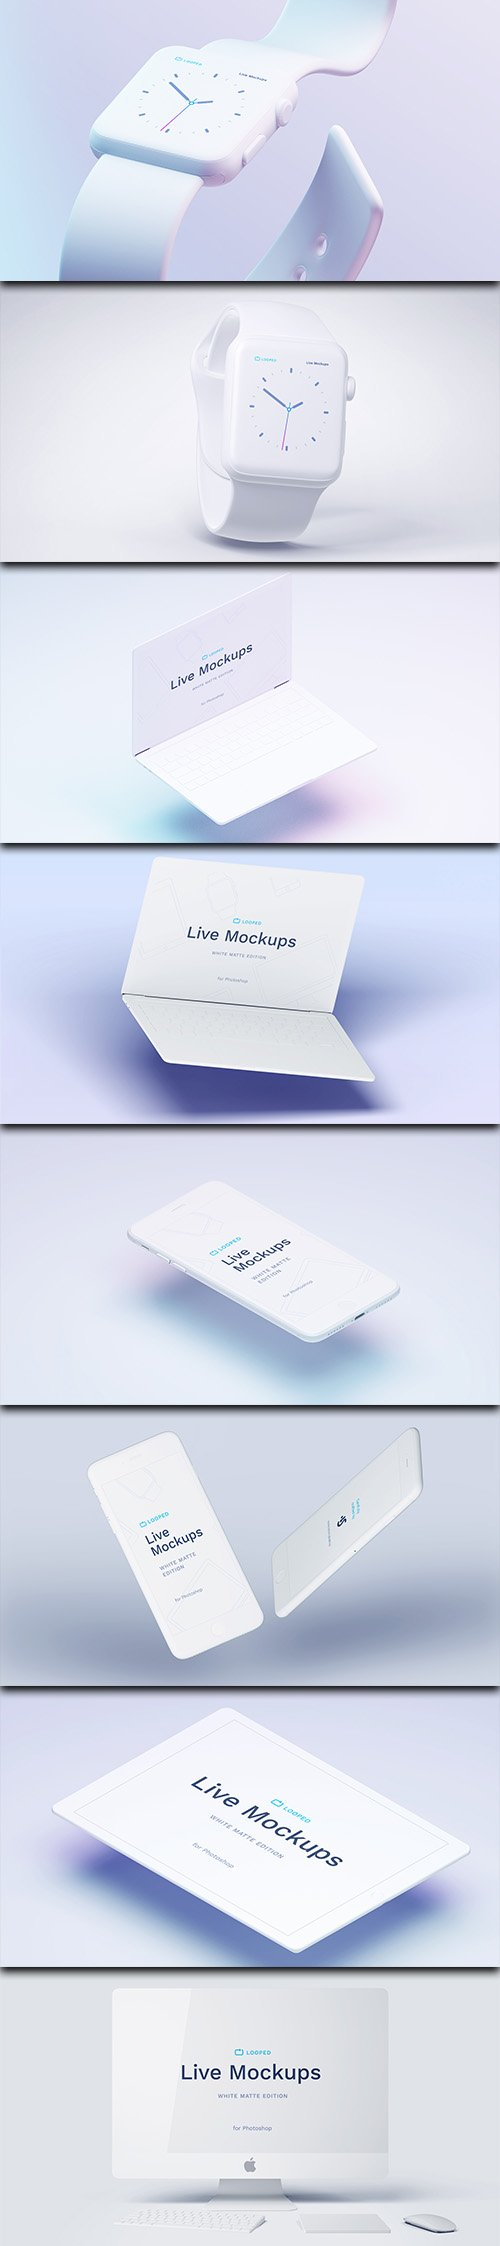 PSD & SKETCH Mock-Up's - Apple Technology - White Clay